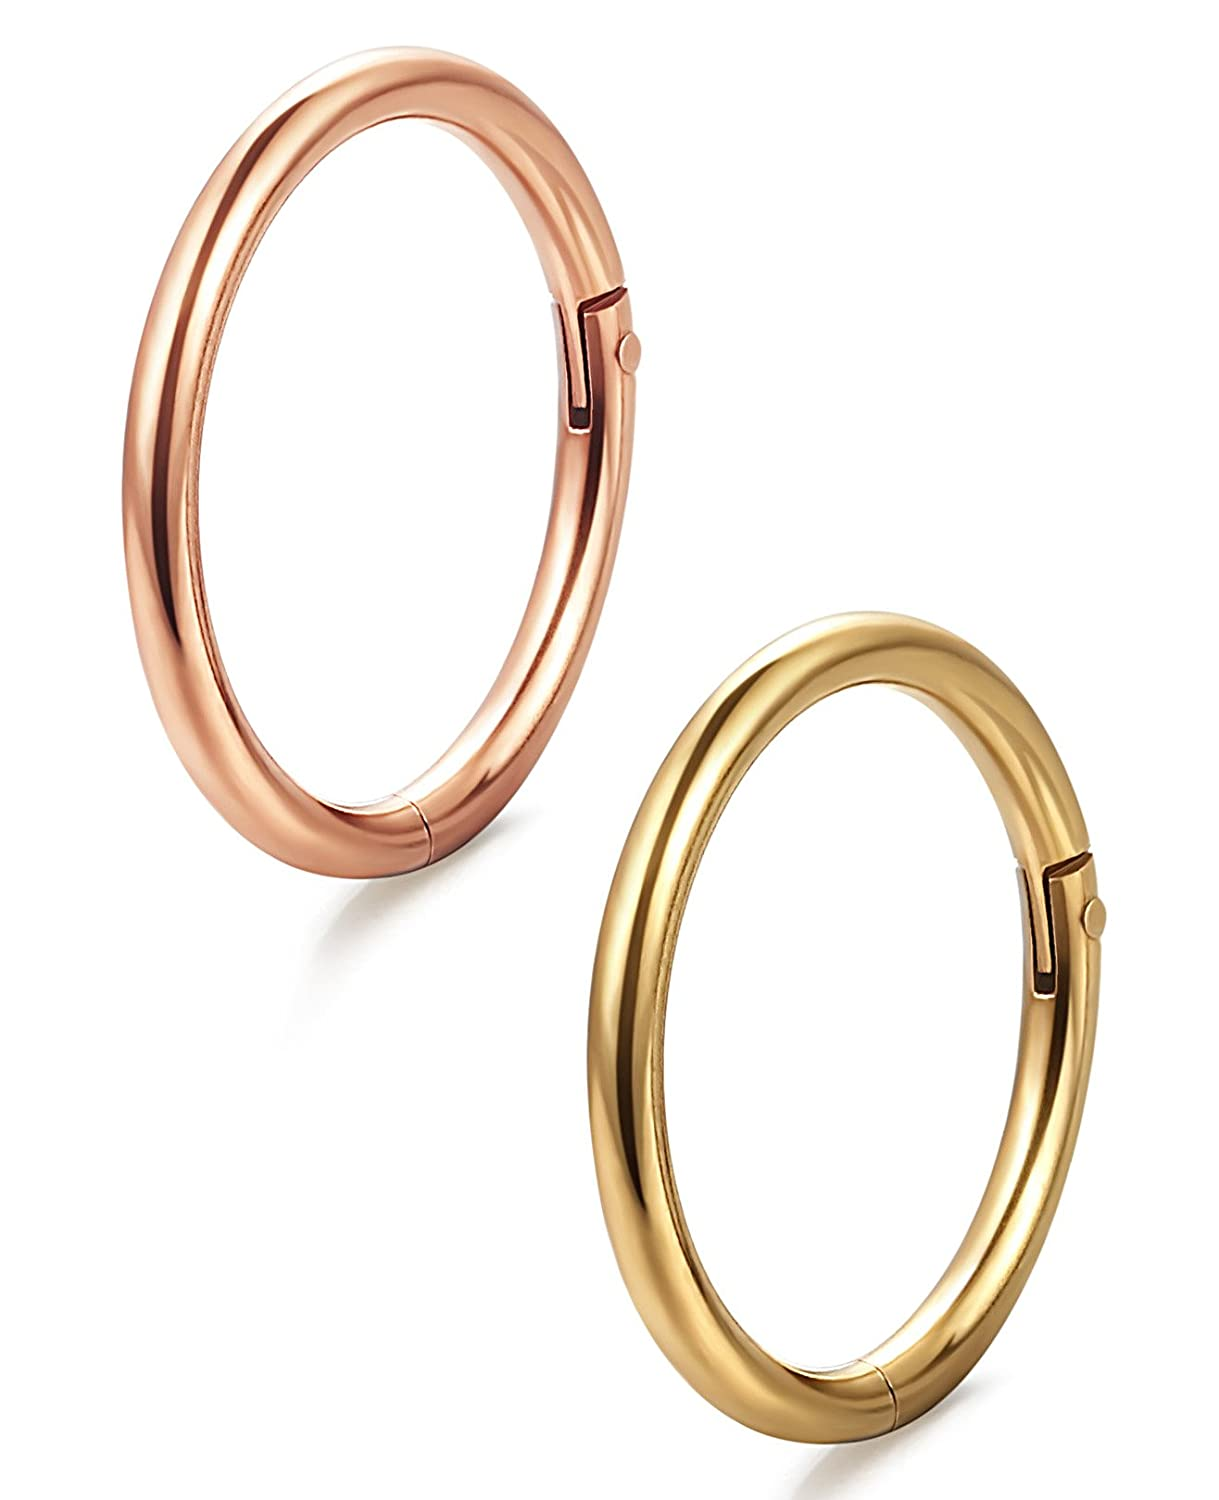 ORAZIO 2-5Pcs 16G Stainless Steel Nose Ring Body Piercing Ear Hoop Seamless Clicker Ring